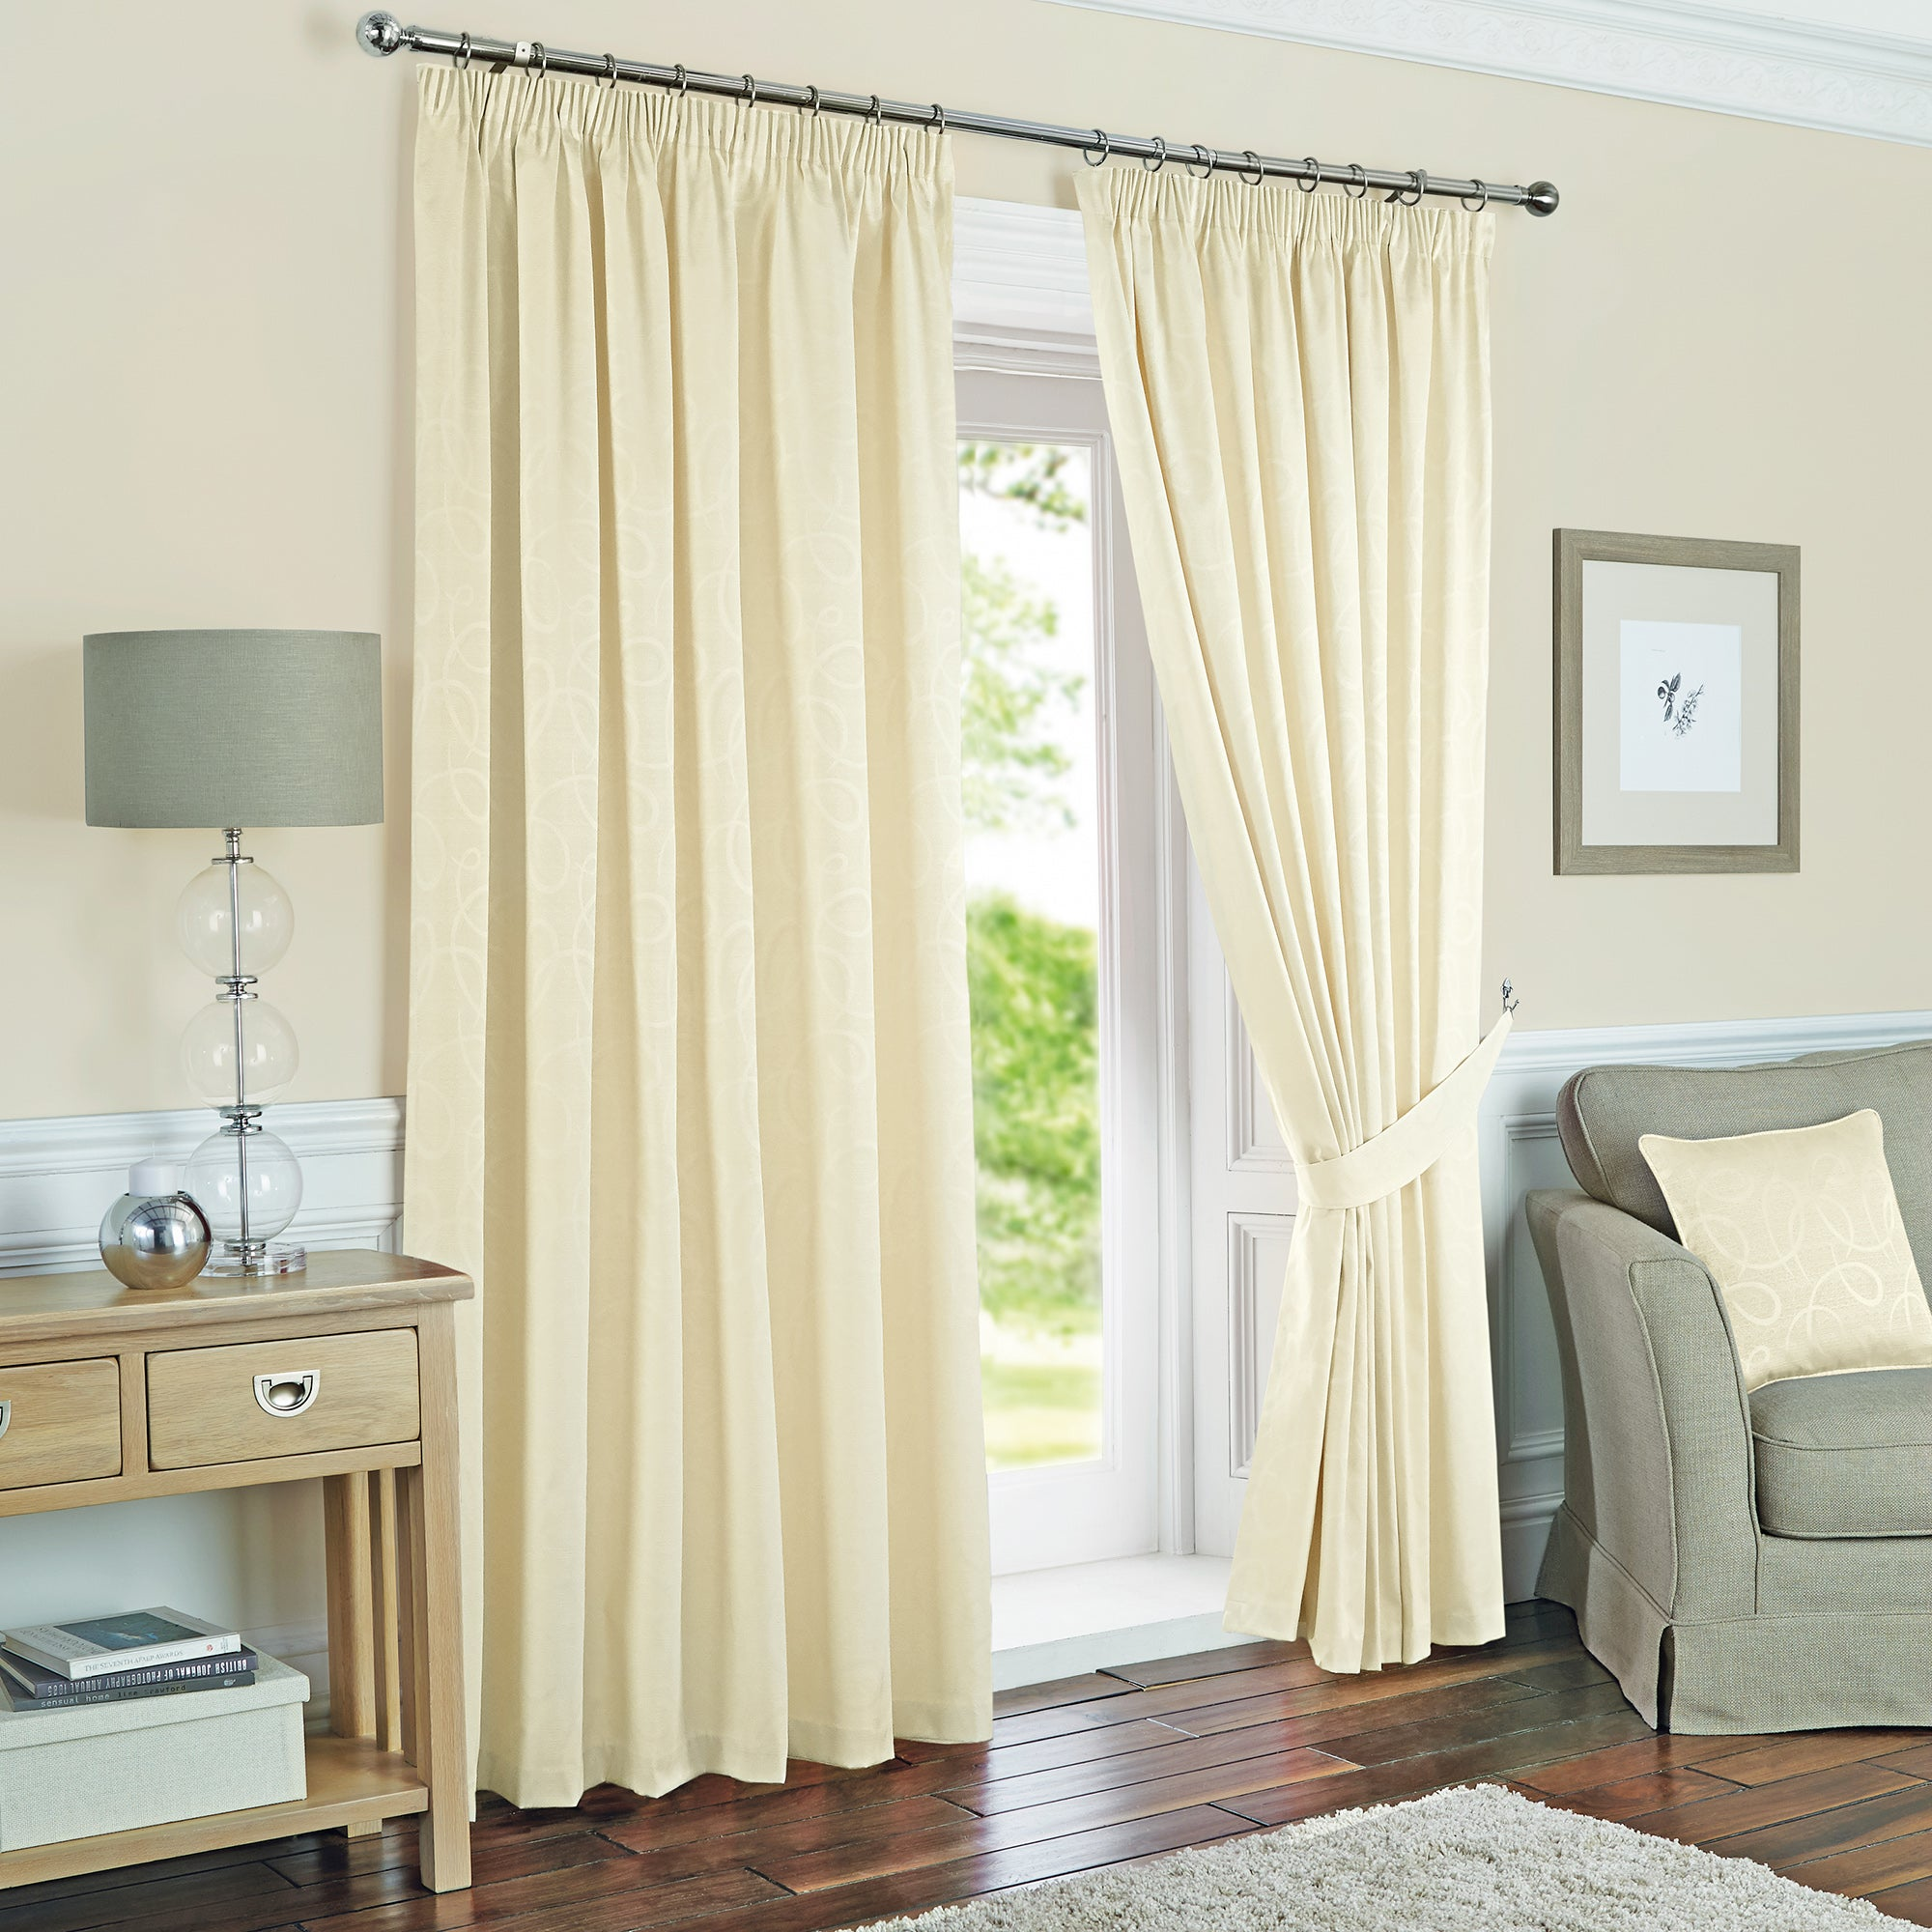 Cream Toledo Thermal Pencil Pleat Curtains